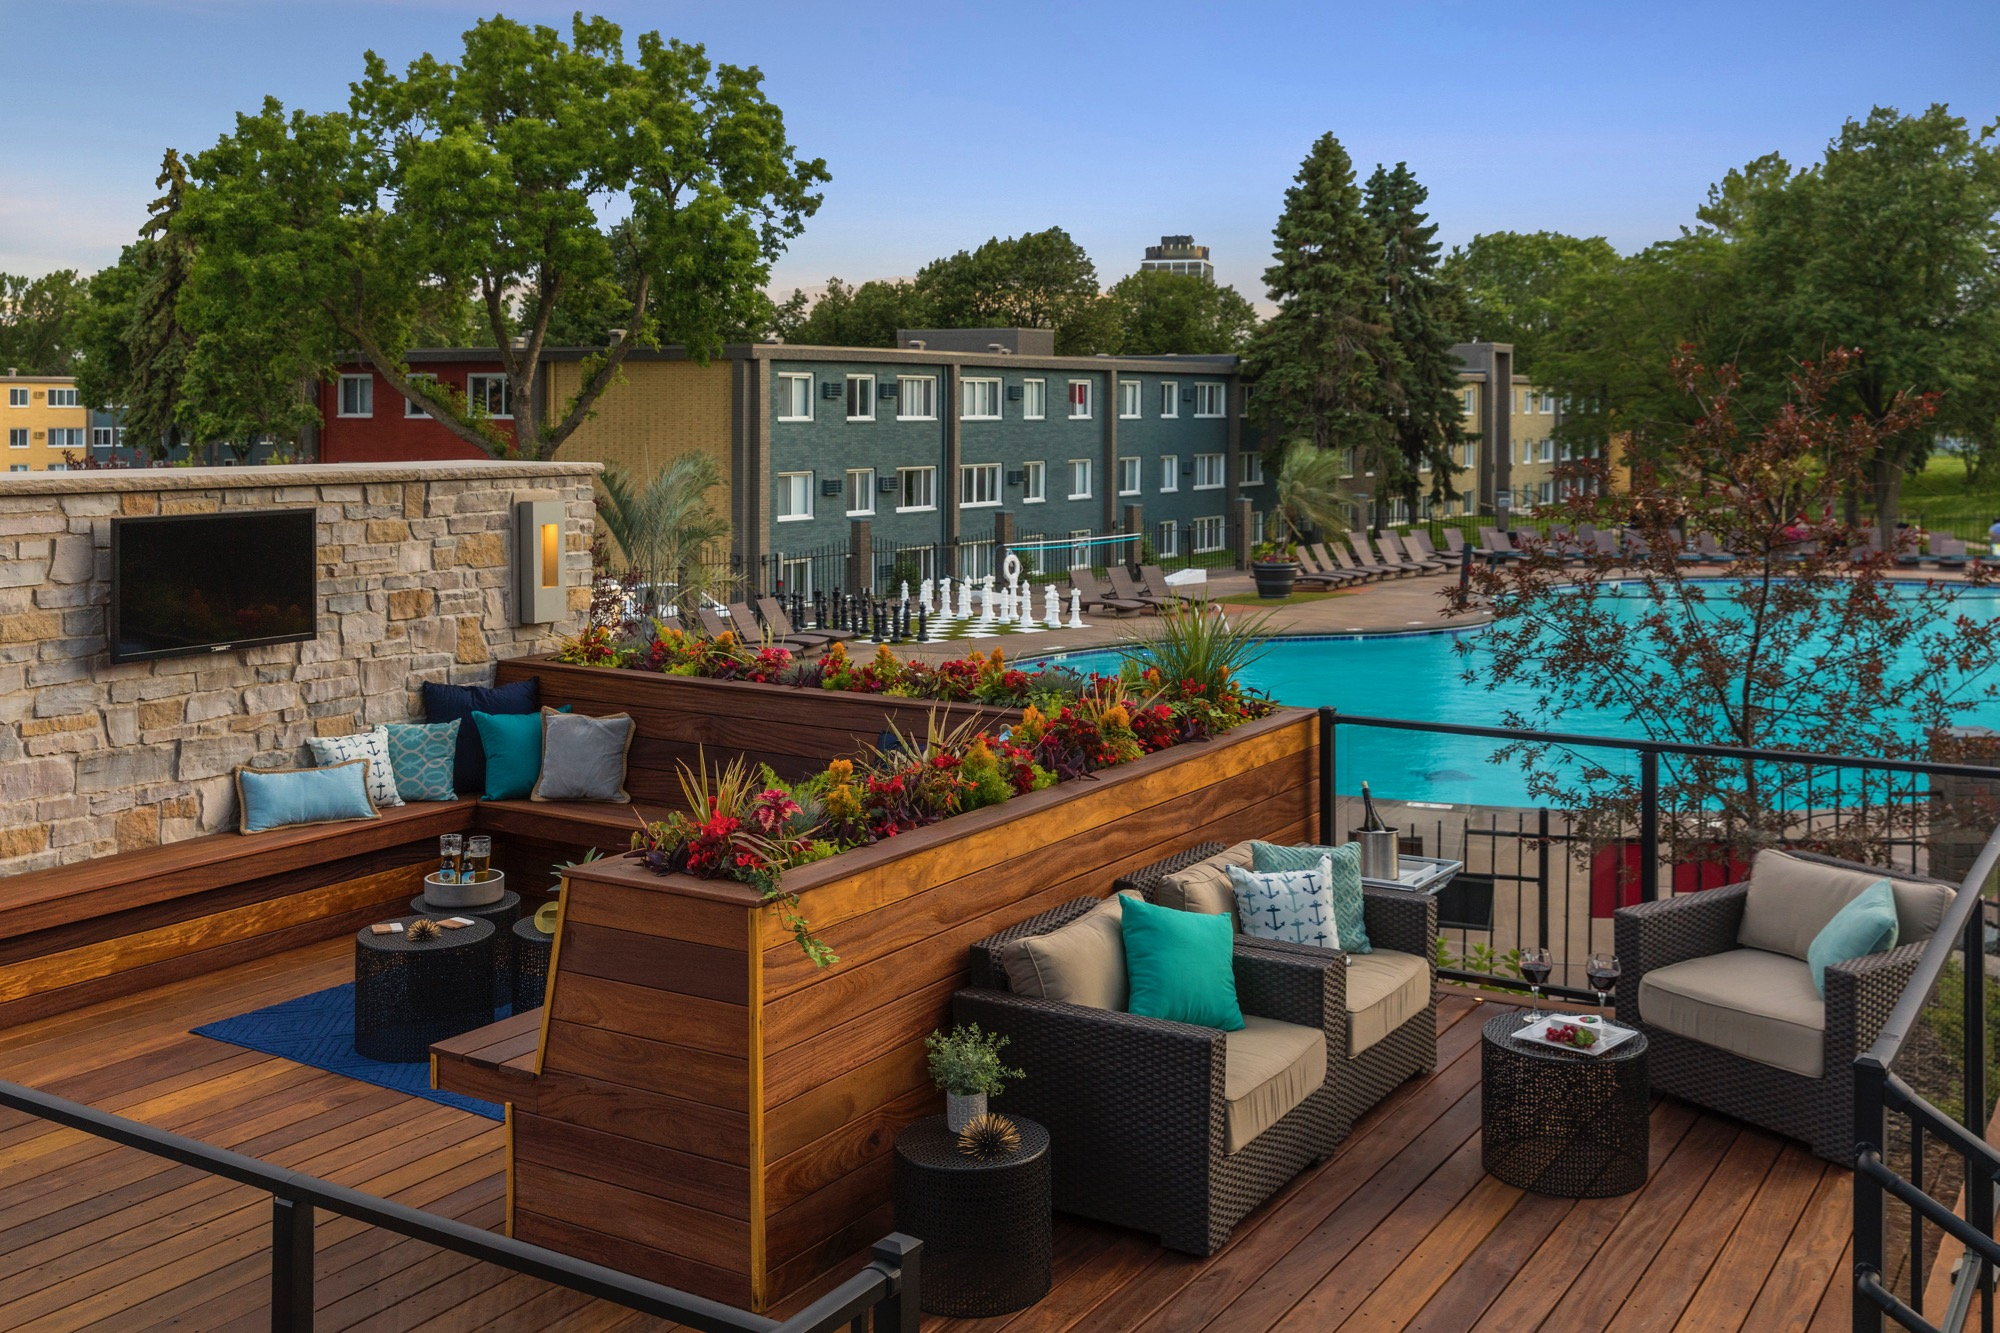 Concierge Apartments won in Commercial Specialty